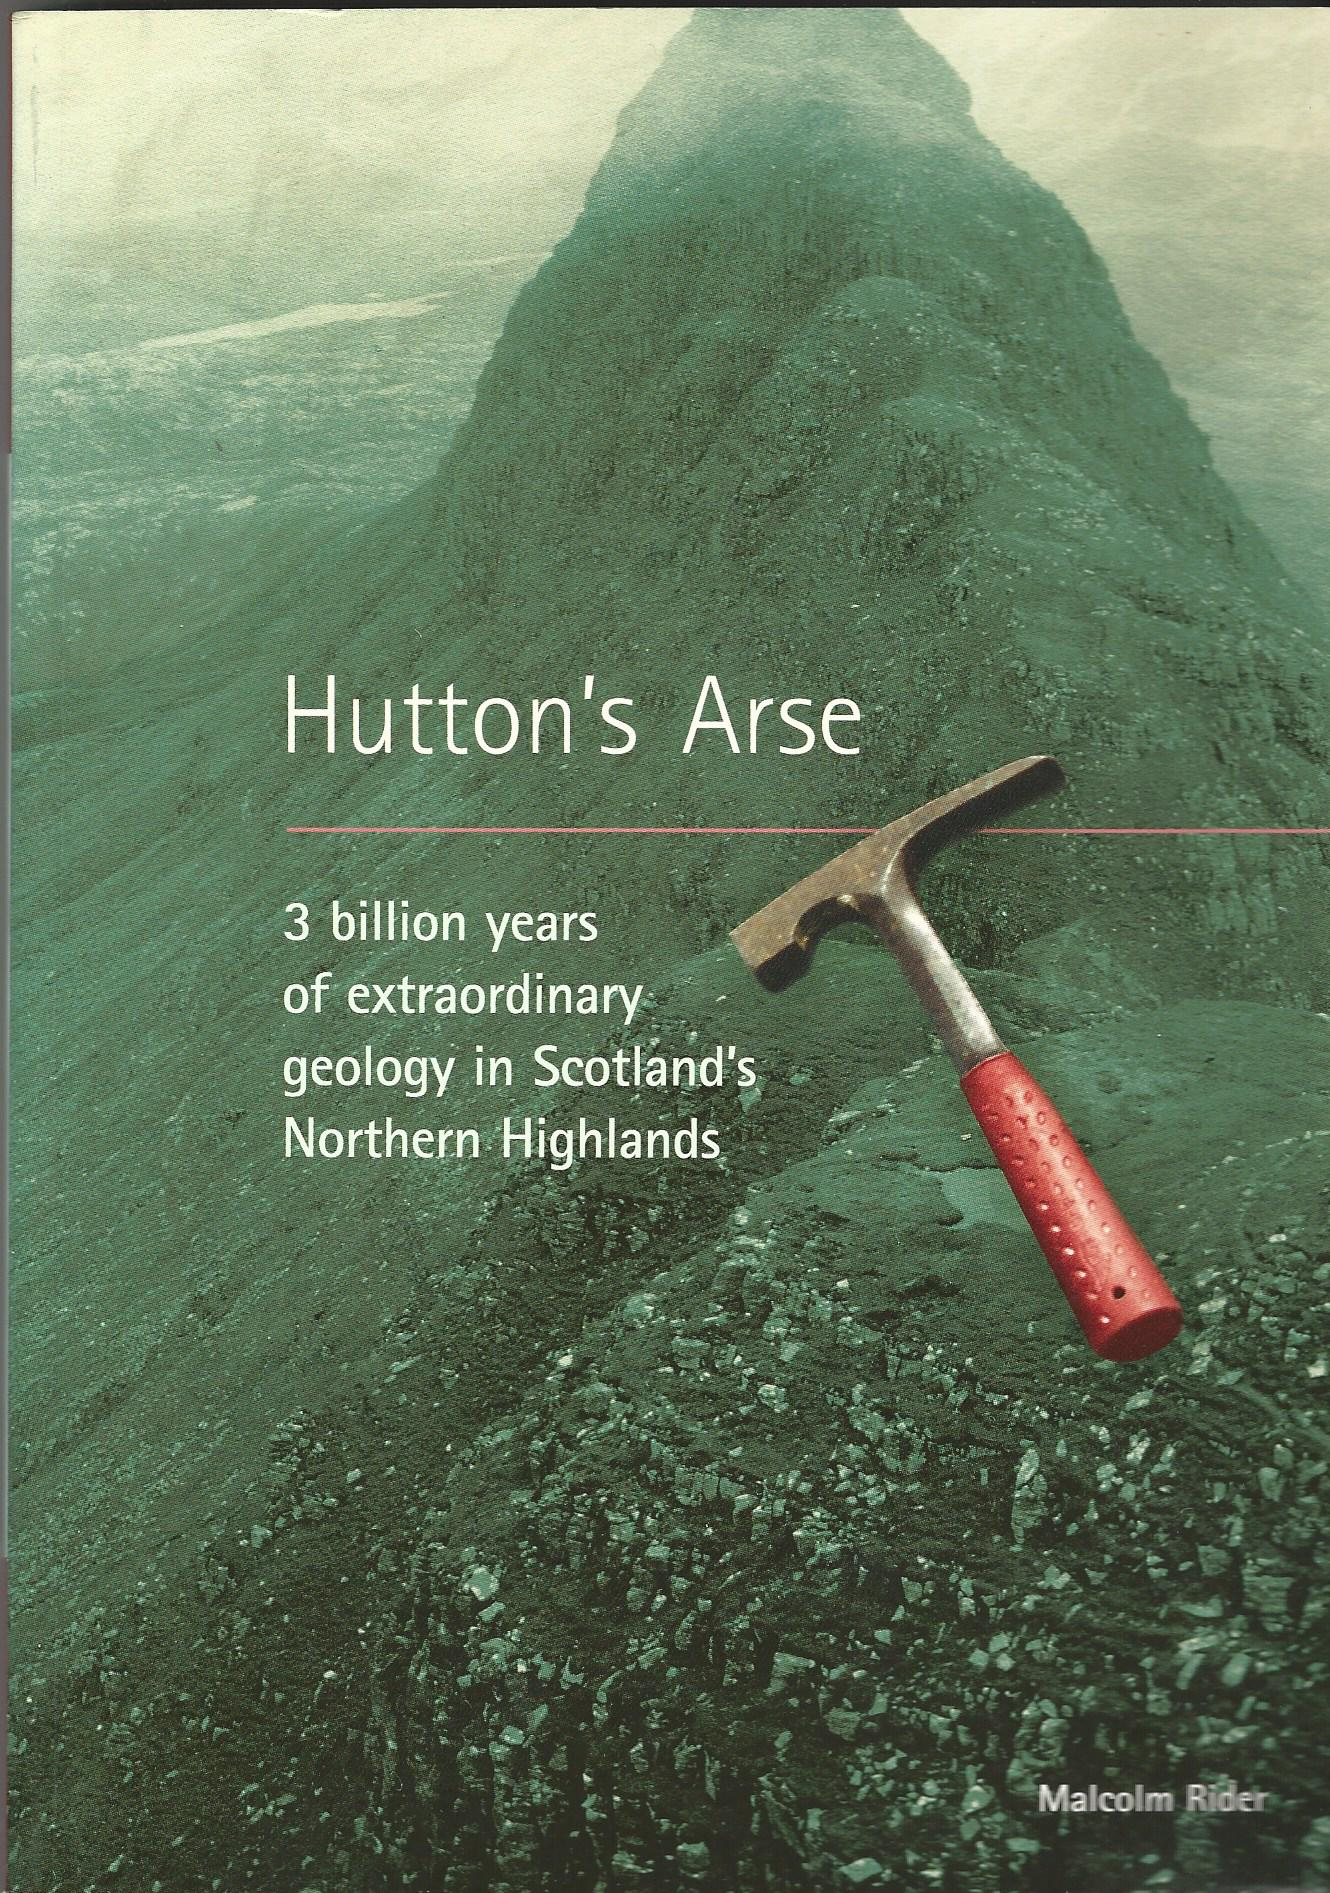 Image for Hutton's Arse: 3 Billion Years of Extraordinary Geology in Scotland's Northern Highlands